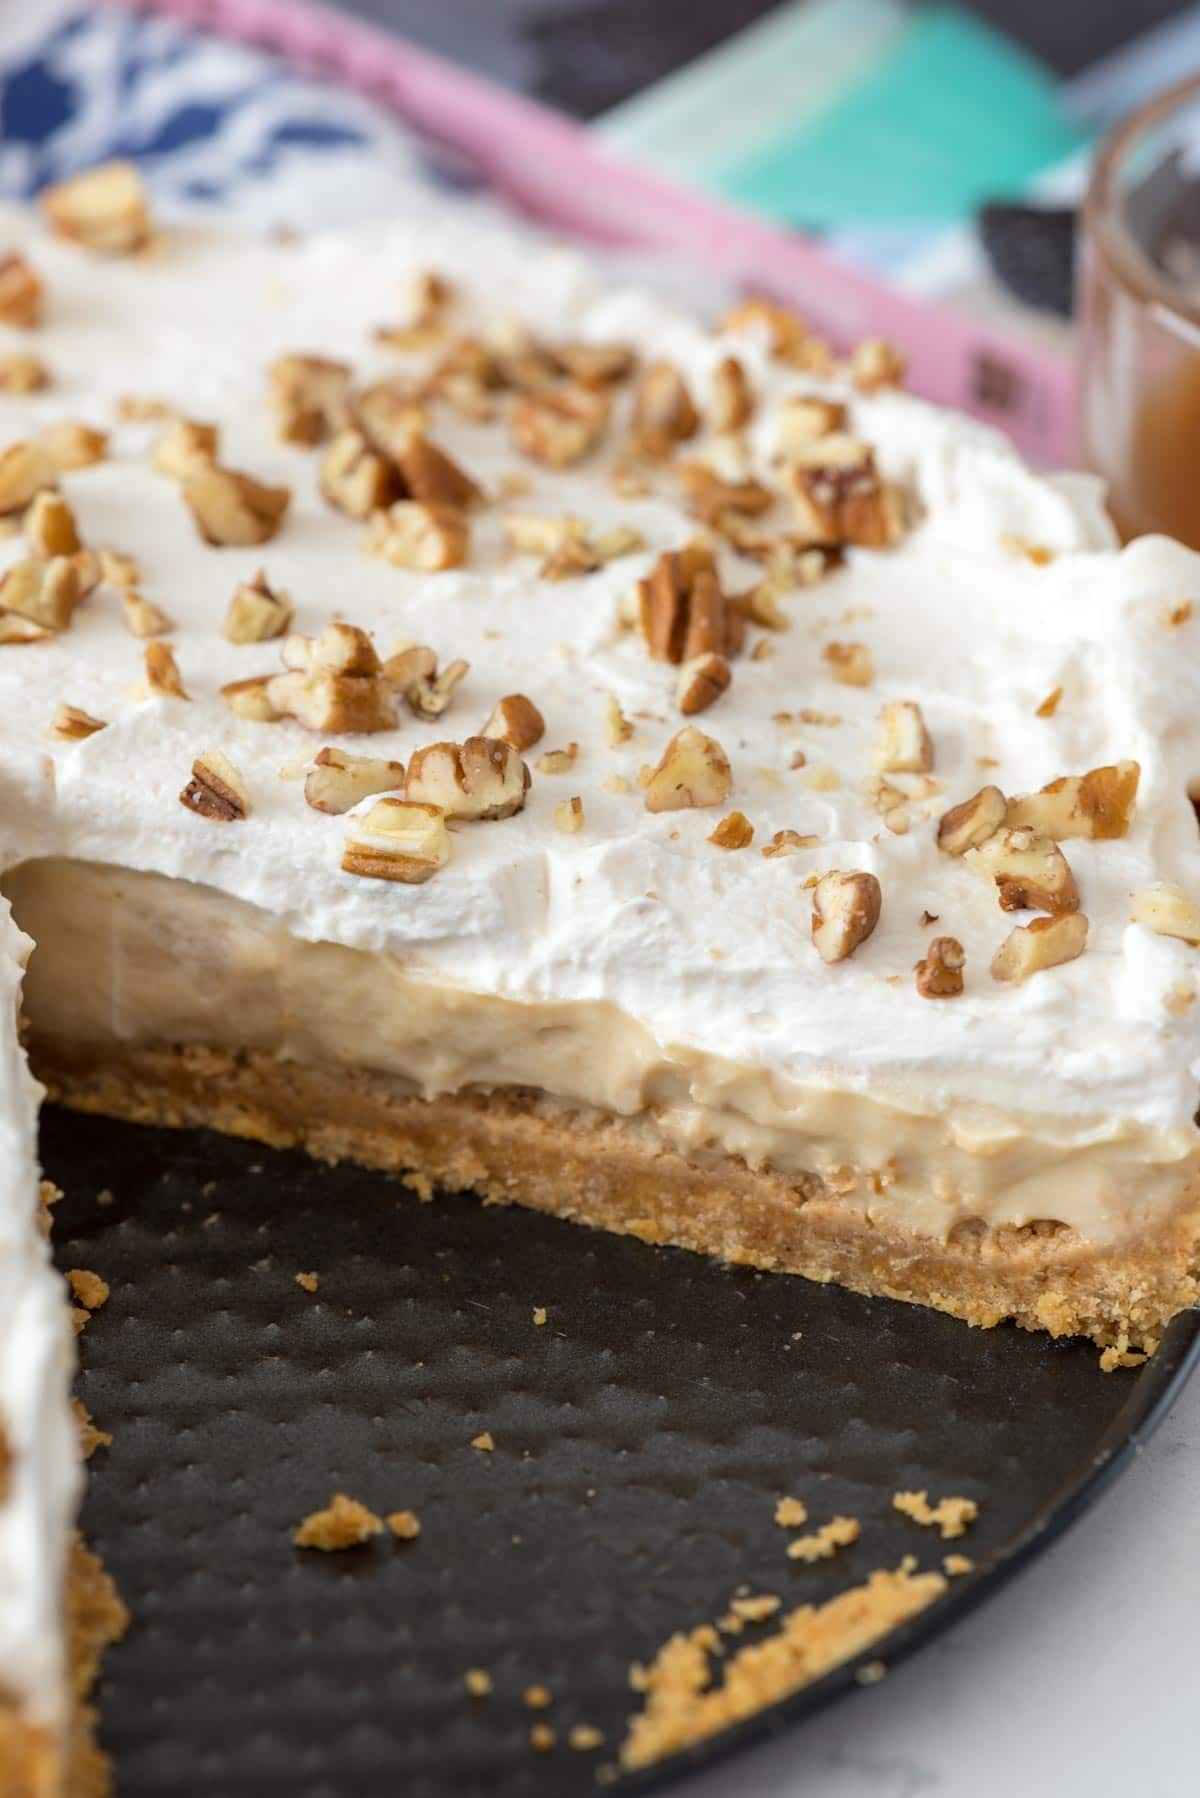 No Bake Butterscotch Pie - this easy from scratch pie is the BEST PUDDING PIE I've ever eaten.